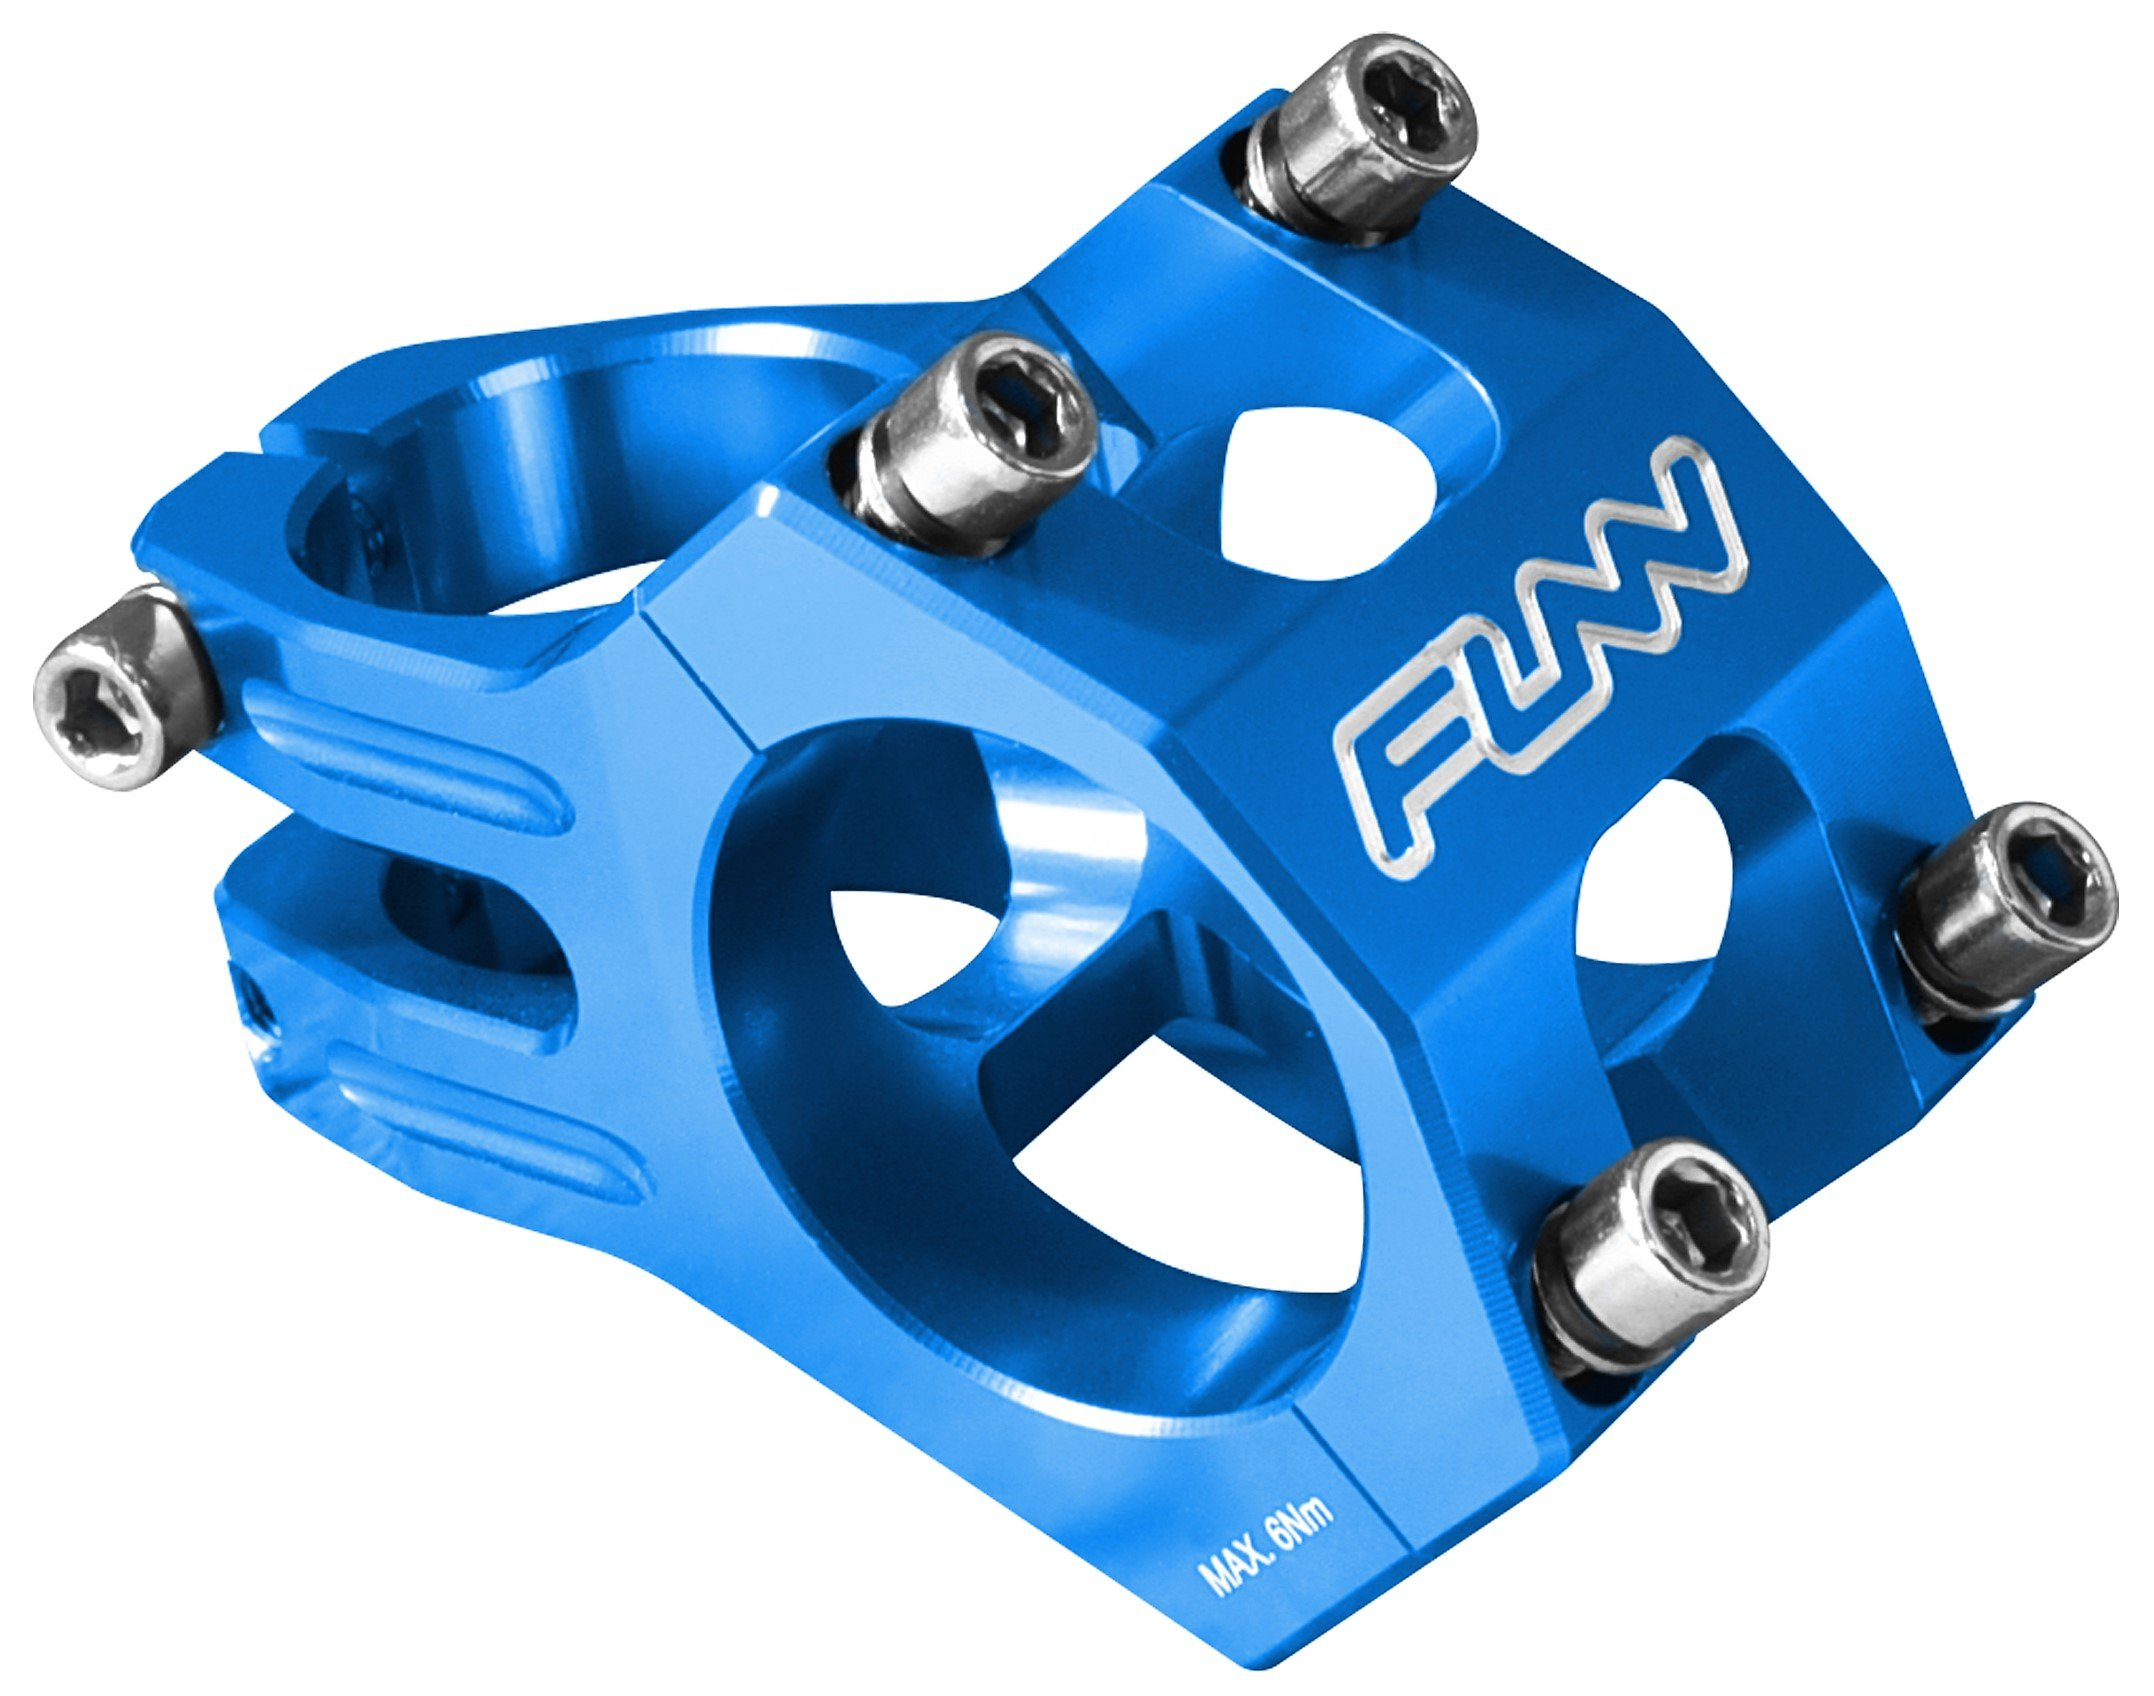 Funn Funnduro MTB Stem, Bar Clamp 31.8mm (Length 35mm, Blue) by Funn